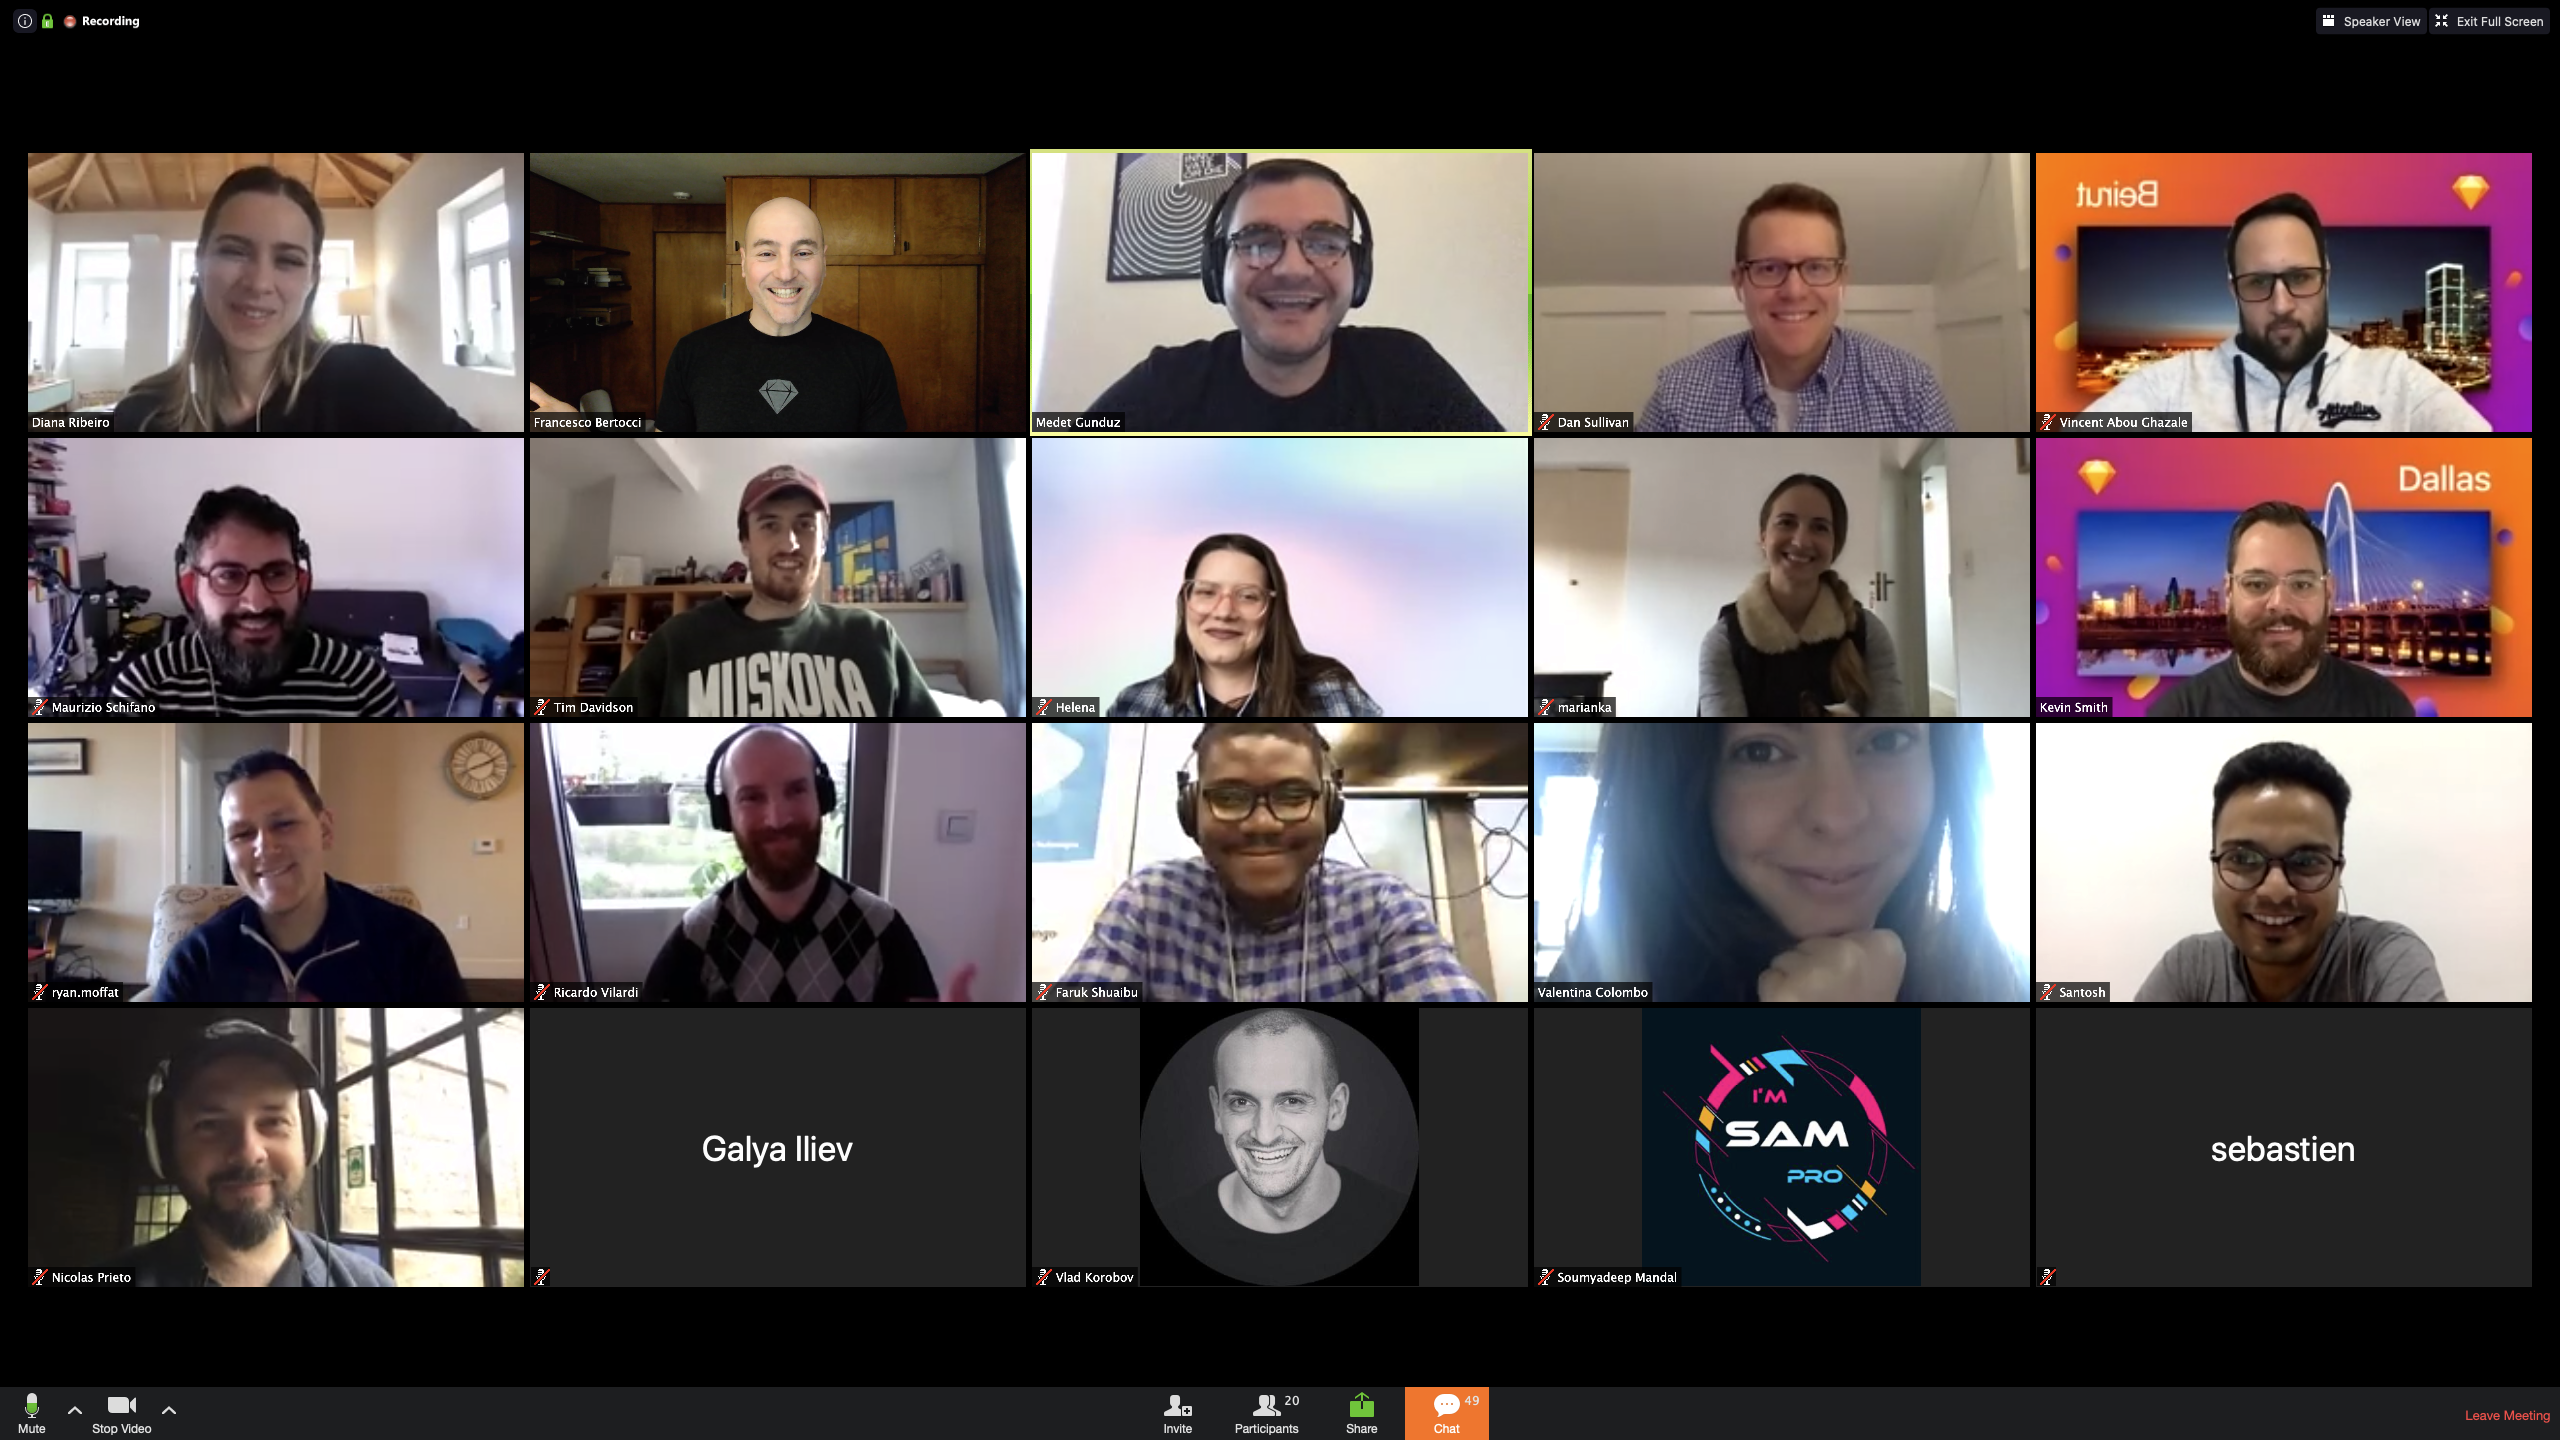 Another screenshot taken from a Zoom call showing lots of sers taking part in a digital meetup.